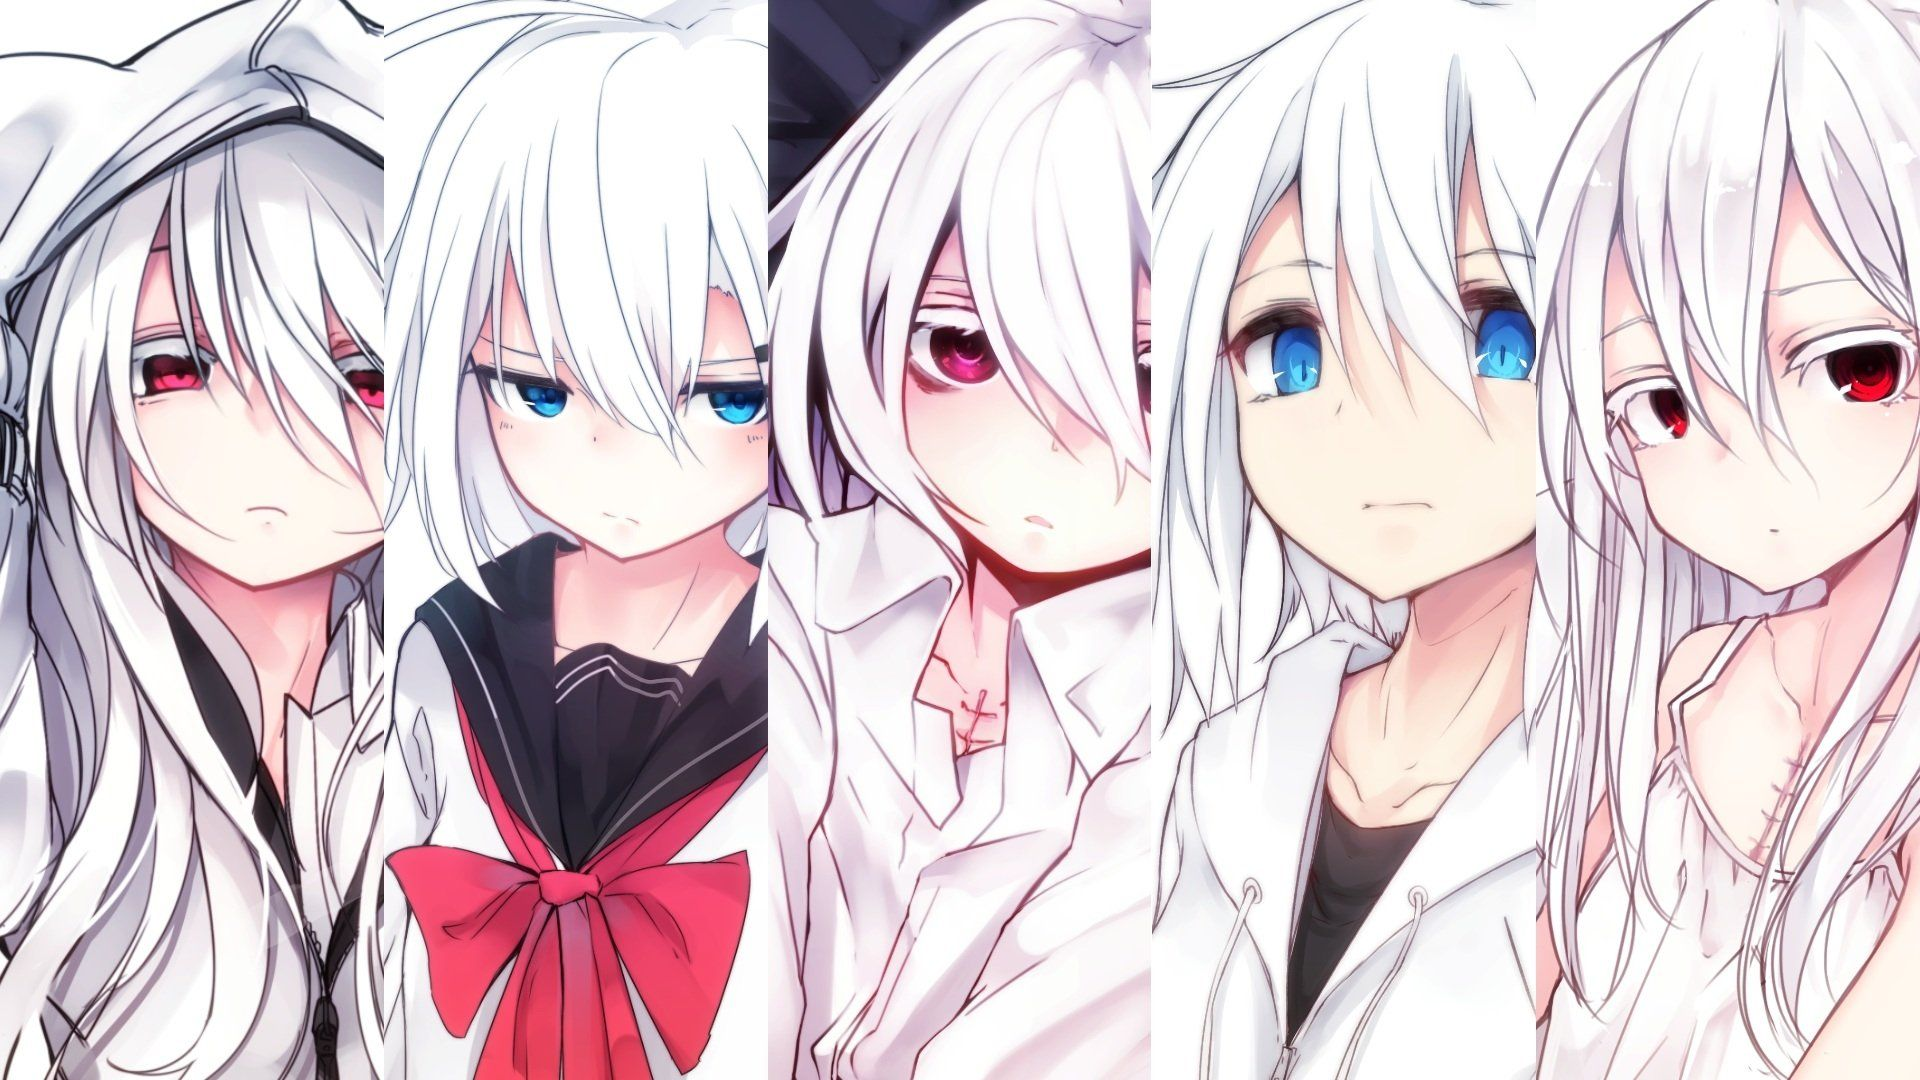 Group Anime Girl Wallpapers Wallpaper Cave